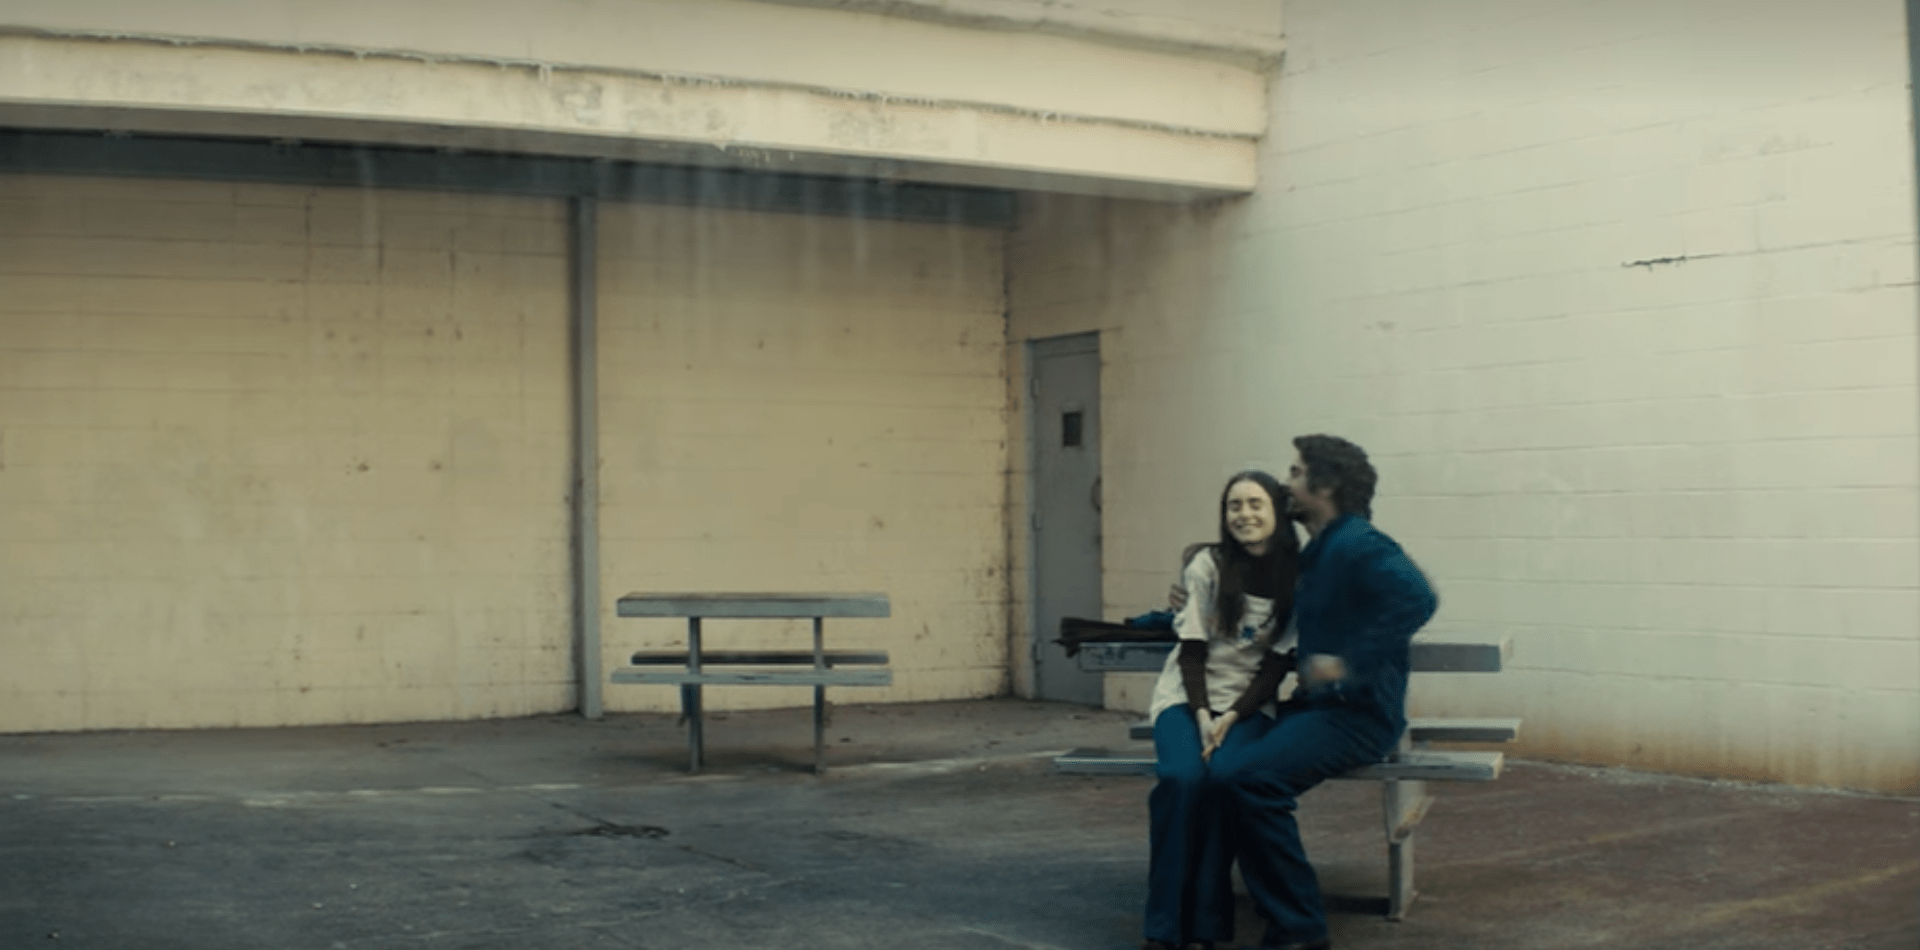 Lessons I Learned About Toxic Love From 'Extremely Wicked, Shockingly Evil and Vile'